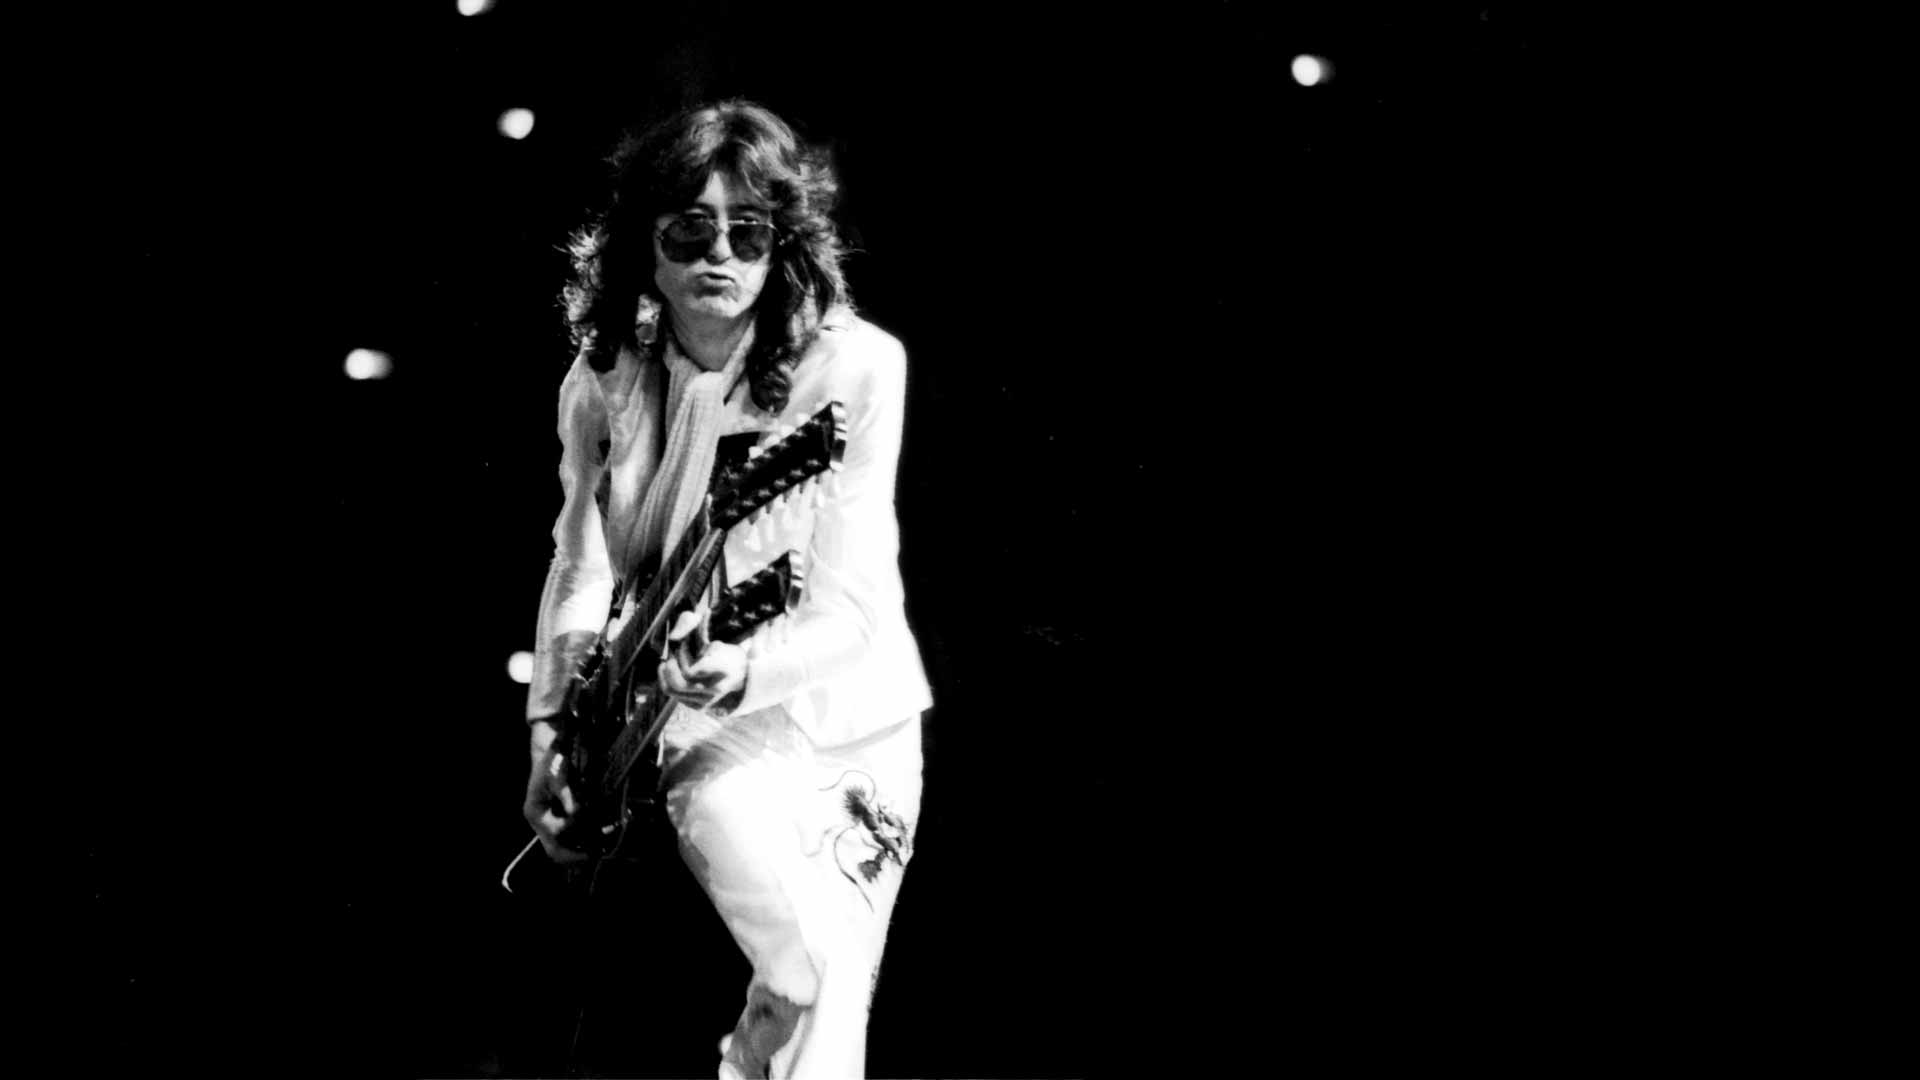 on August 31 2015 By Stephen Comments Off on Jimmy Page HD Wallpapers 1920x1080